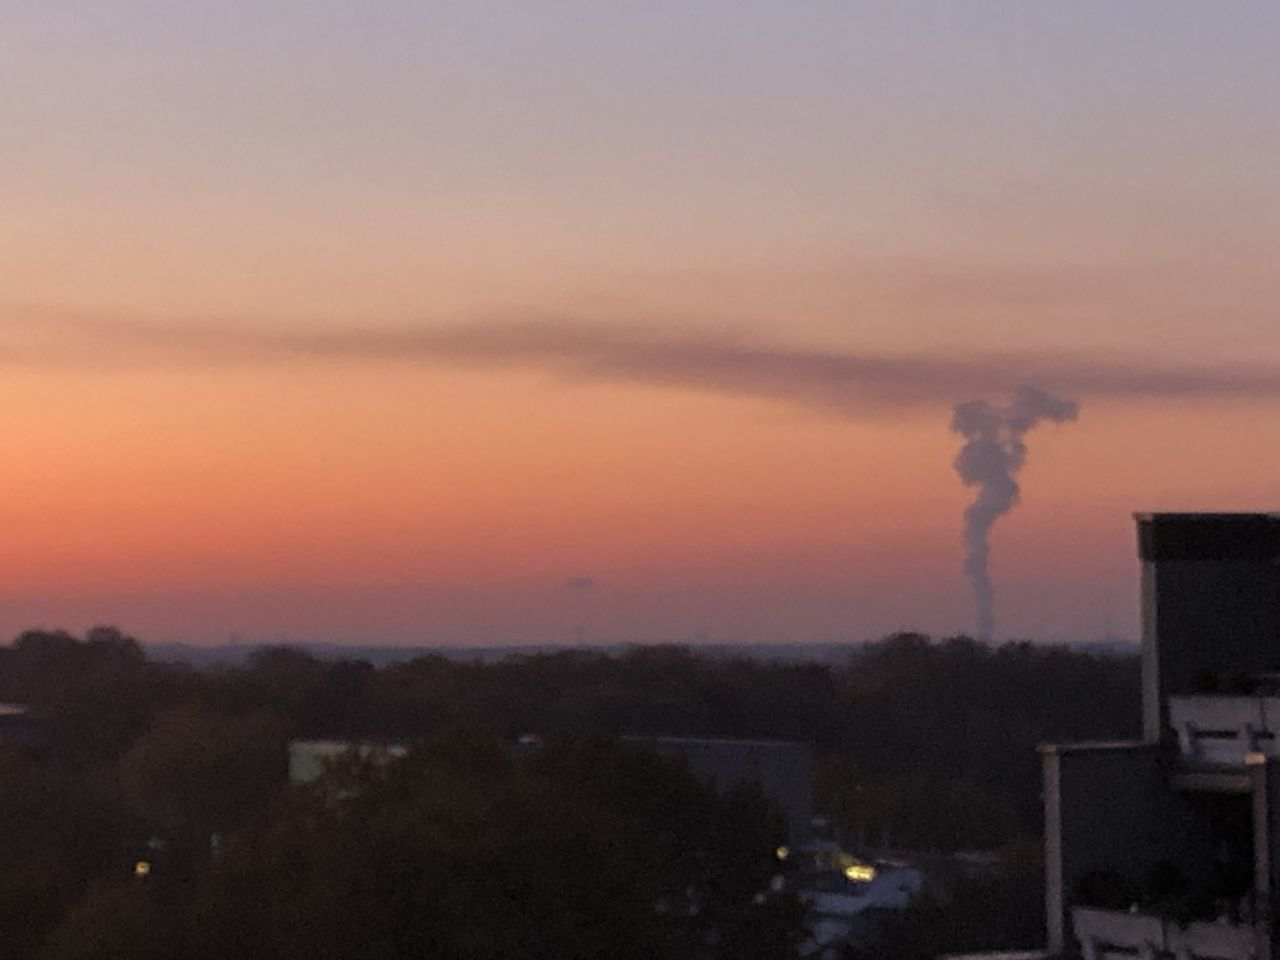 smoke - physical structure, building exterior, sky, sunset, smoke stack, factory, emitting, pollution, industry, built structure, environmental issues, environment, chimney, air pollution, architecture, smoke, no people, fumes, orange color, atmospheric, outdoors, ecosystem, cityscape